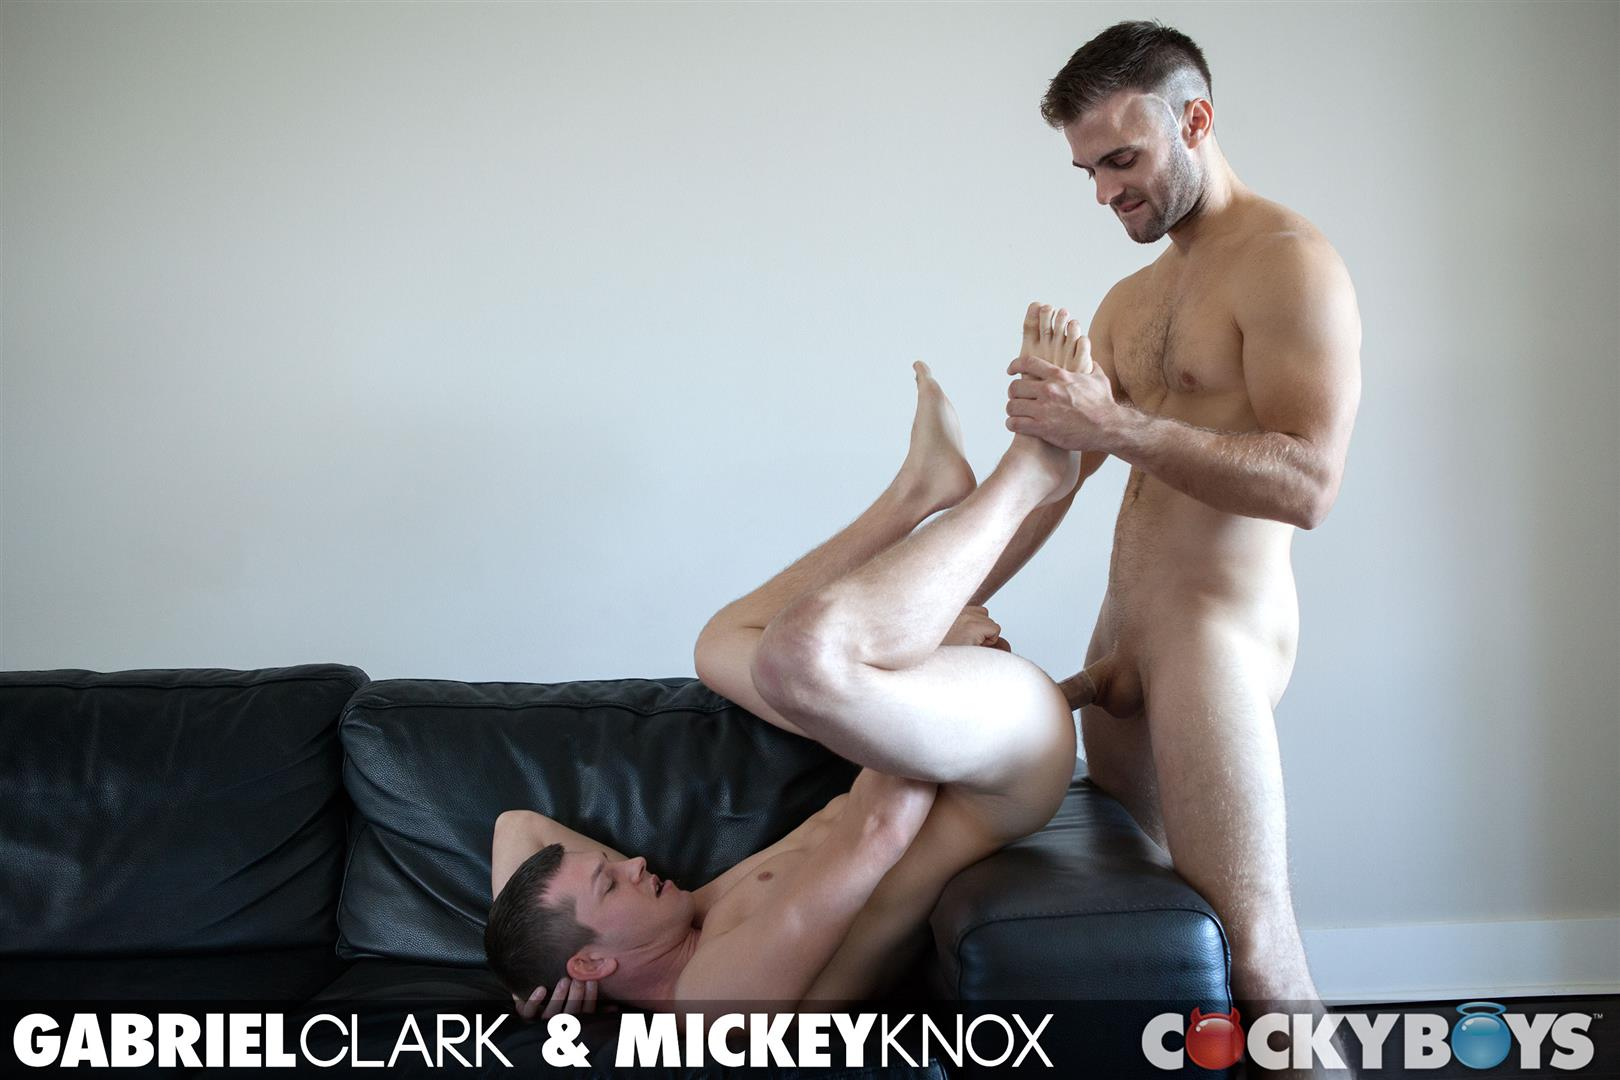 Cockyboys Mickey Knox and Gabriel Clark American Boys Thick Cocks Fucking Amateur Gay Porn 20 All American Boys Mickey Knox and Gabriel Clark Share A Fuck